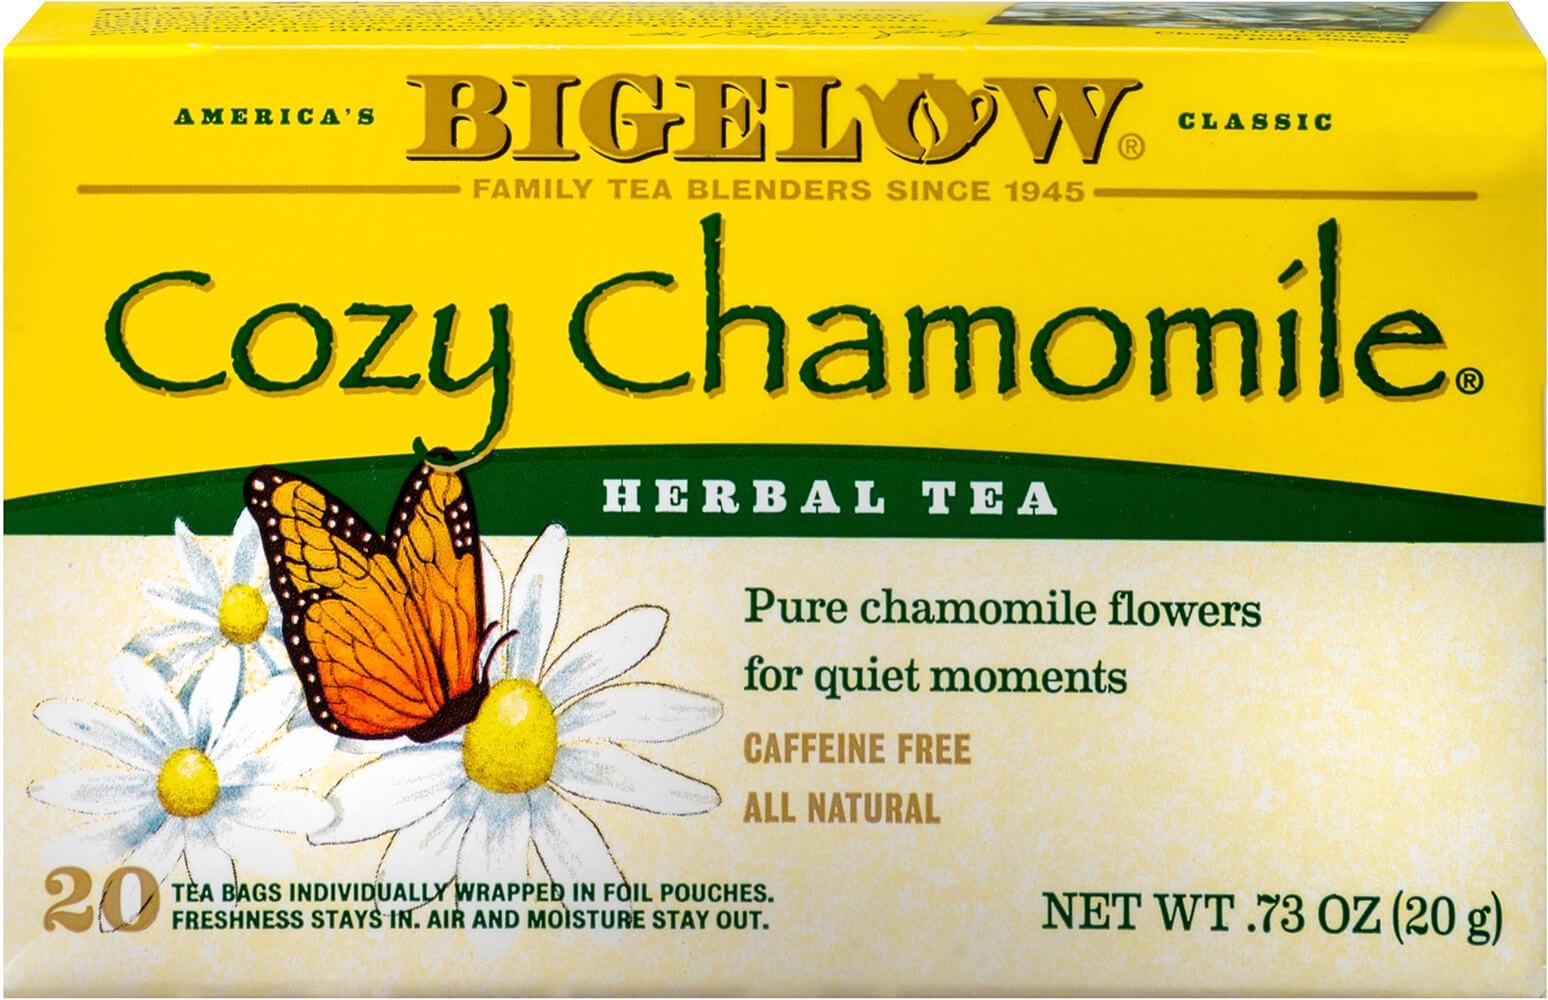 Cozy Chamomile Herb Tea Thumbnail Alternate Bottle View